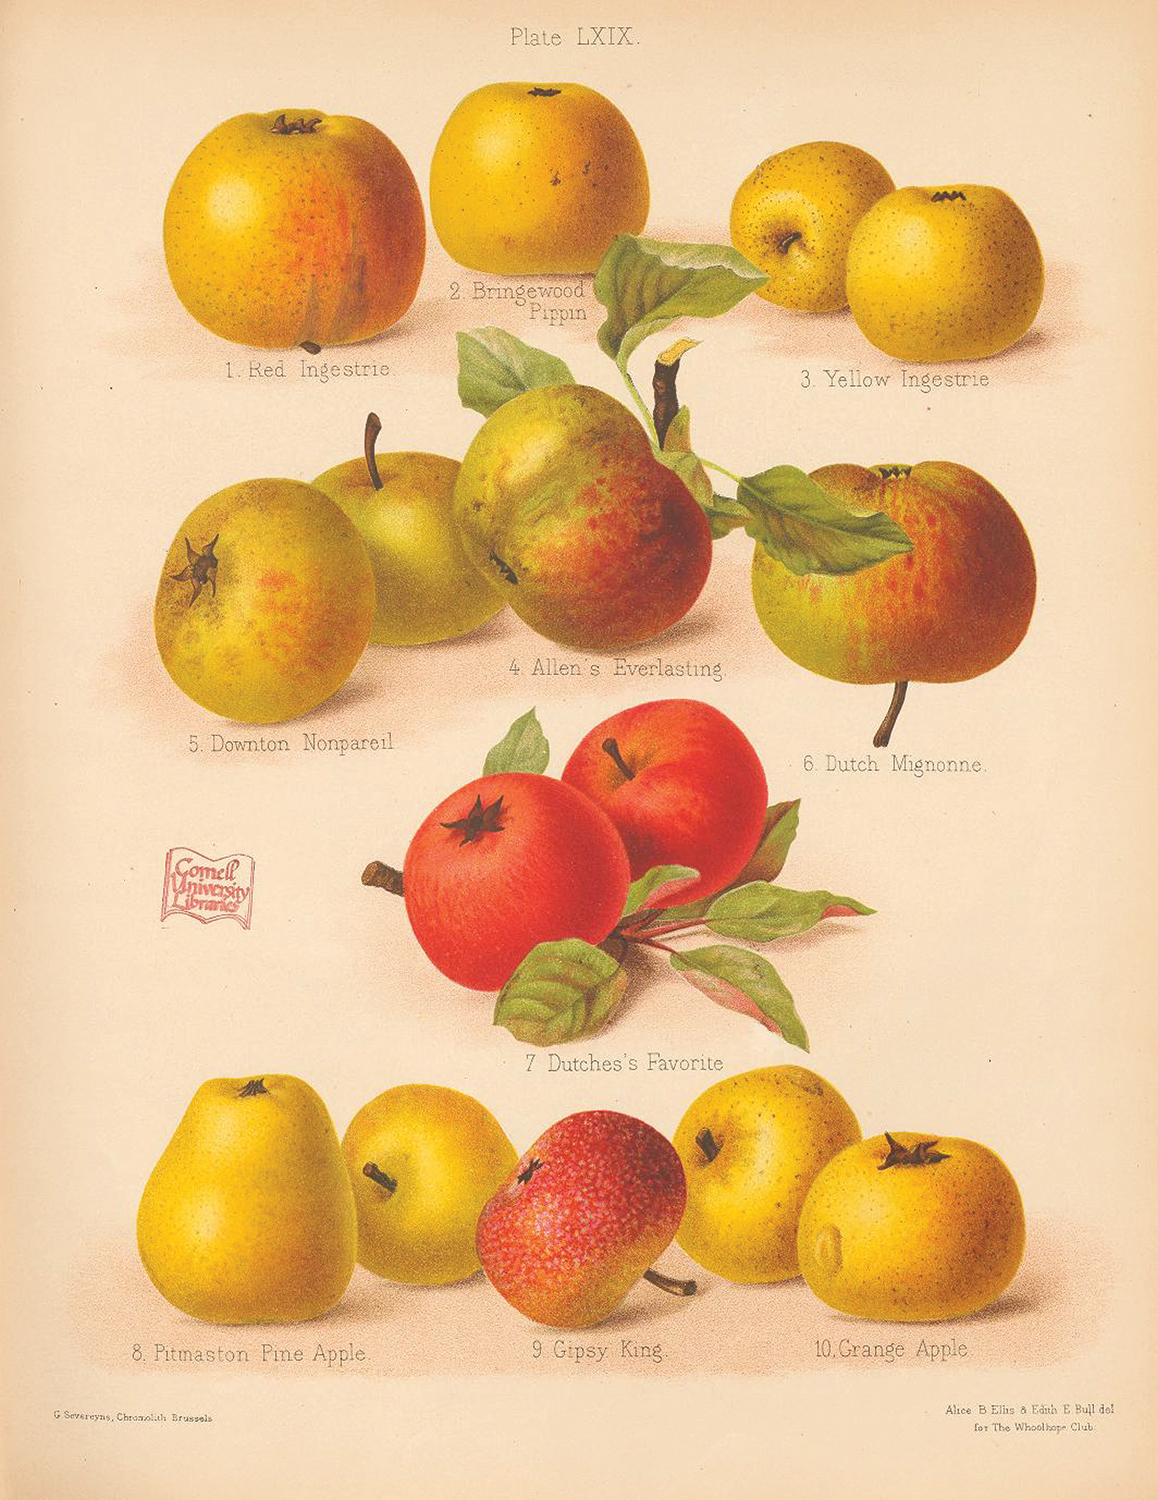 Illustration of a variety of apple cultivars